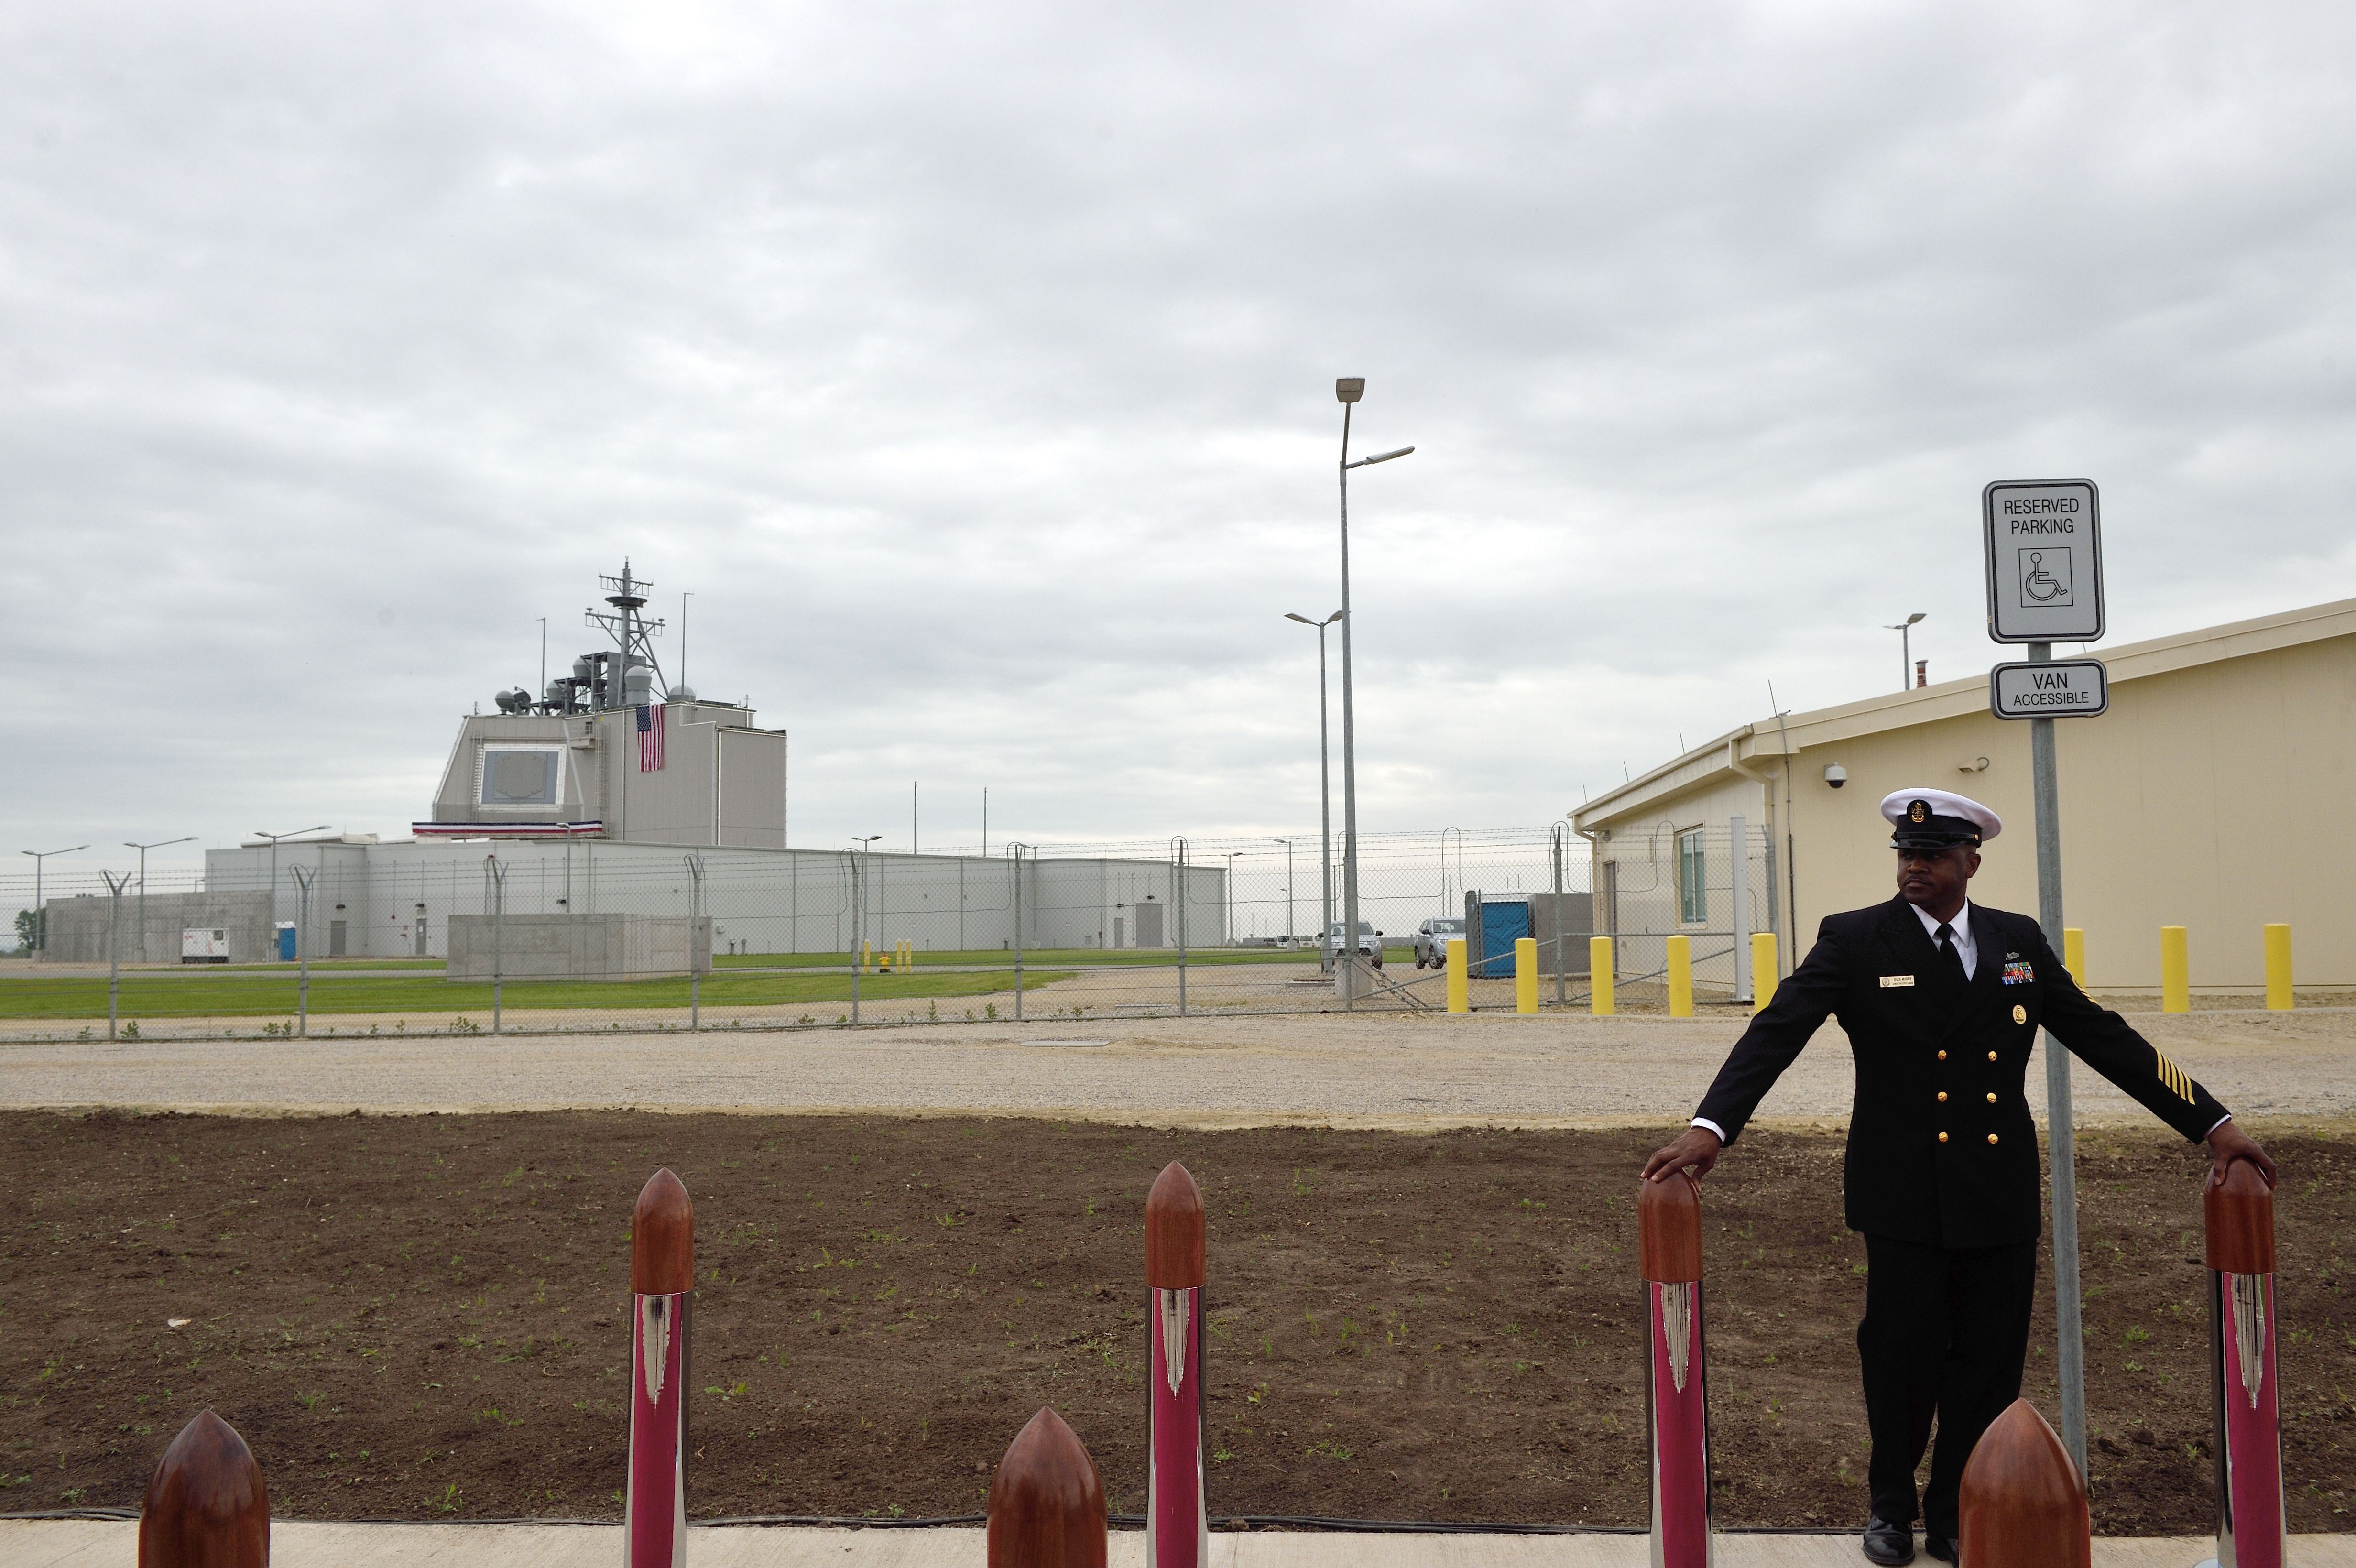 US Army personnel stands at the red carpet ahead an inauguration ceremony of the US anti-missile station Aegis Ashore Romania (in the background) at the military base in Deveselu, Romania on May 12, 2016. Poland's Aegis Ashore site continue to be plagued by construction issues and now won't be operational until possibly 2022. Aegis Ashore is a land-based capability of the Aegis Ballistic Missile Defense (BMD) System. (Photo by DANIEL MIHAILESCU/AFP/Getty Images)